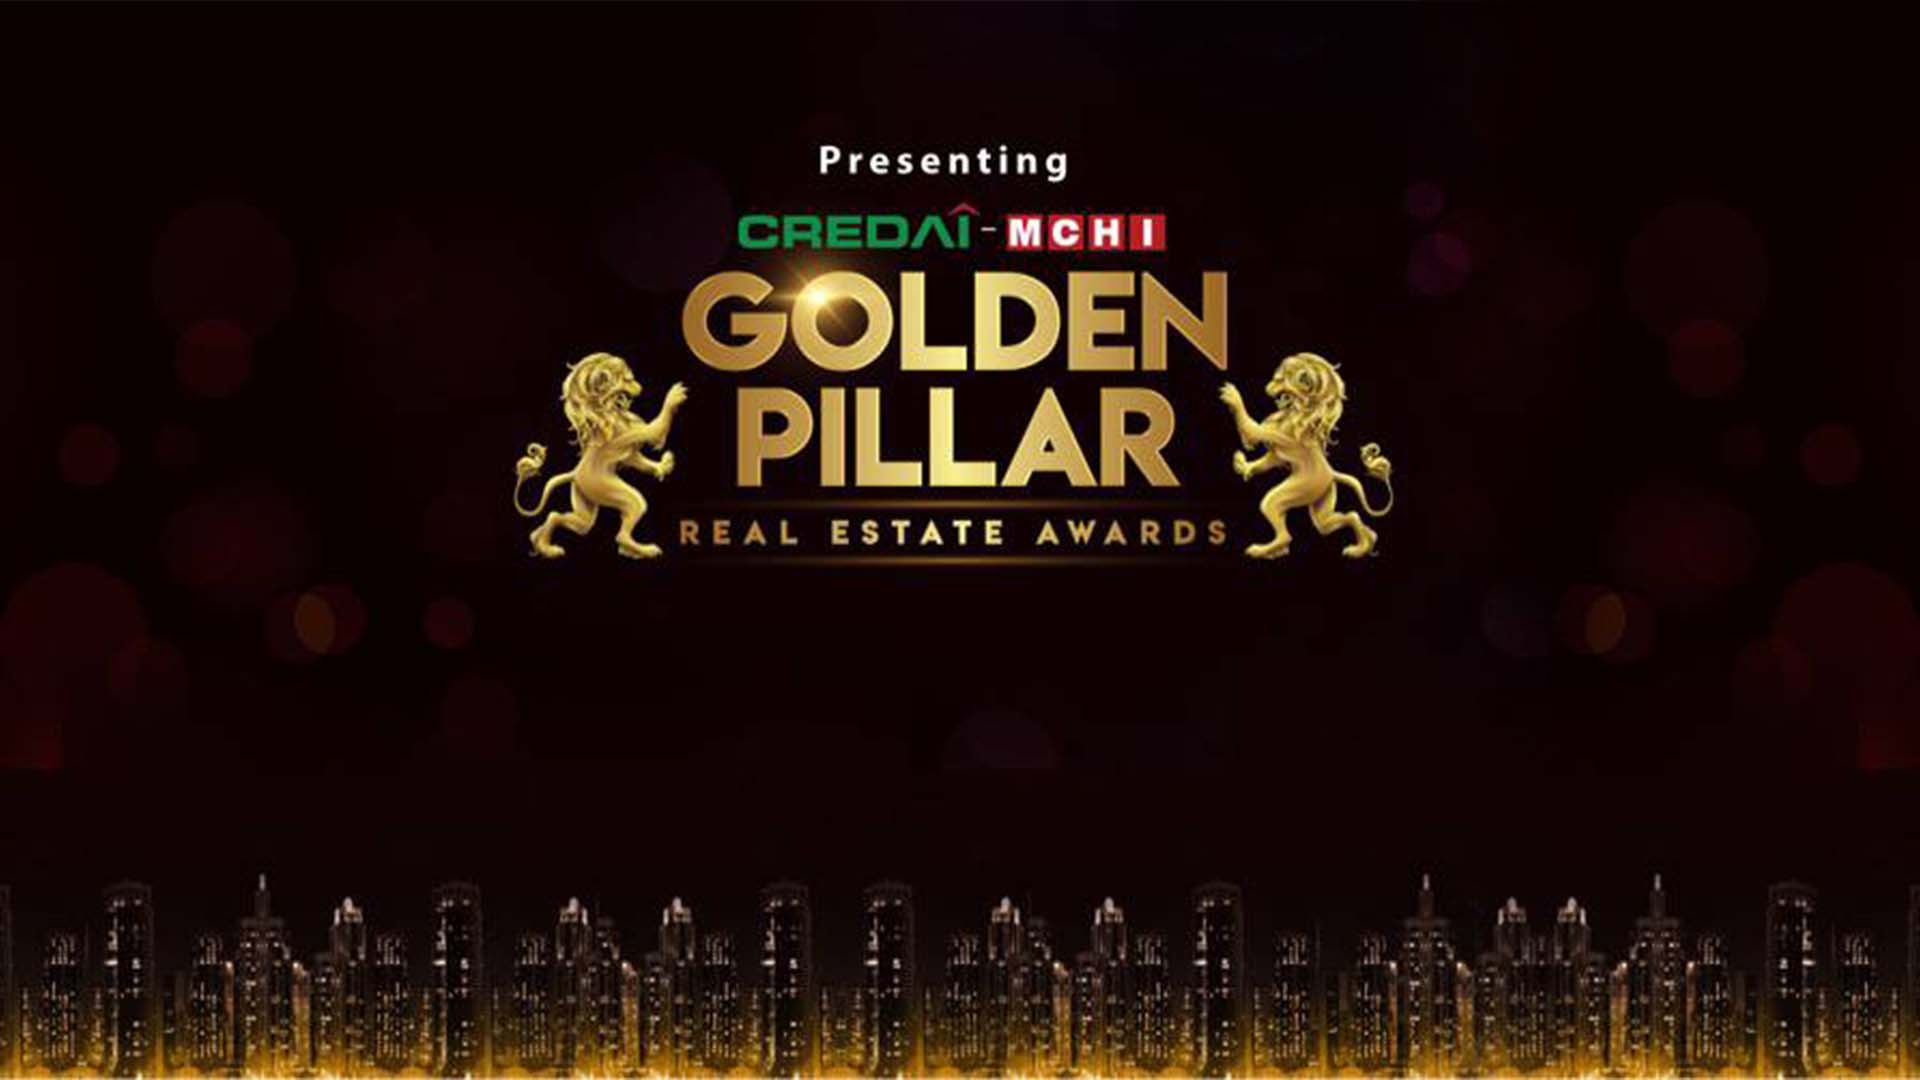 CREDAI-MCHI Golden Pillar Awards 2018